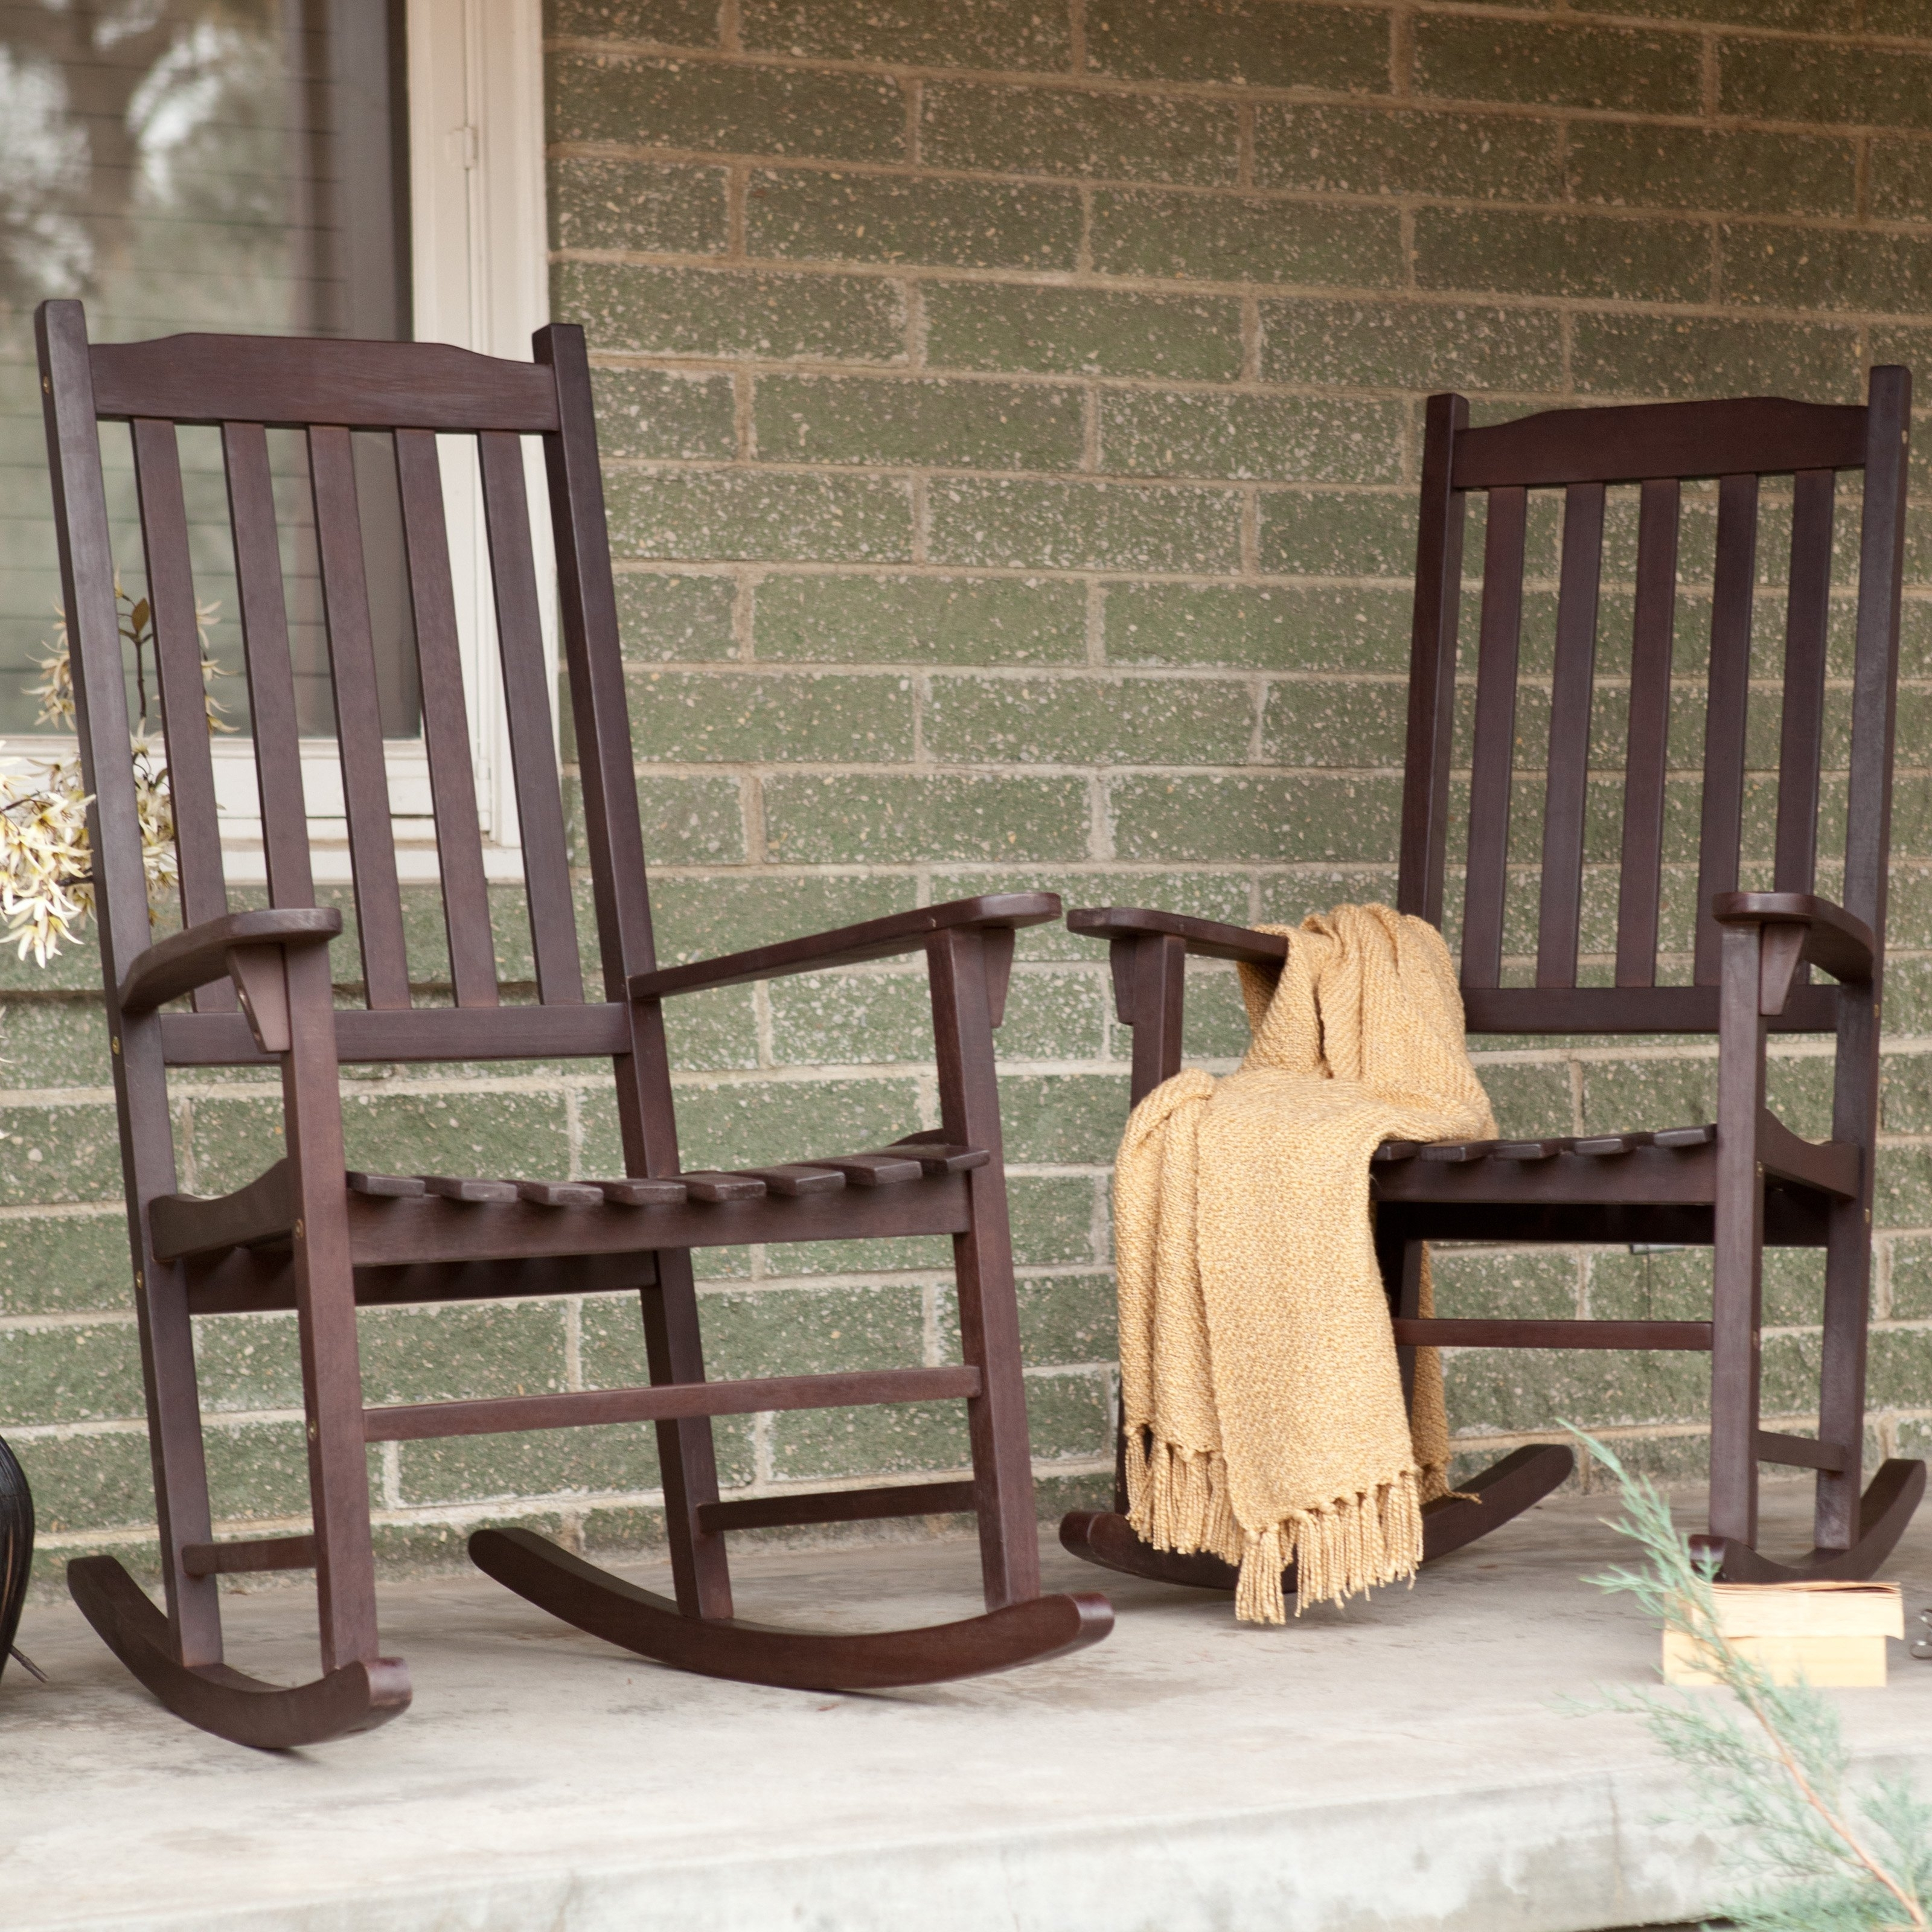 Garden & Patio Furniture : Outdoor Wooden Rocking Chairs New Chairs With Well Known Rocking Chair Outdoor Wooden (Gallery 6 of 20)